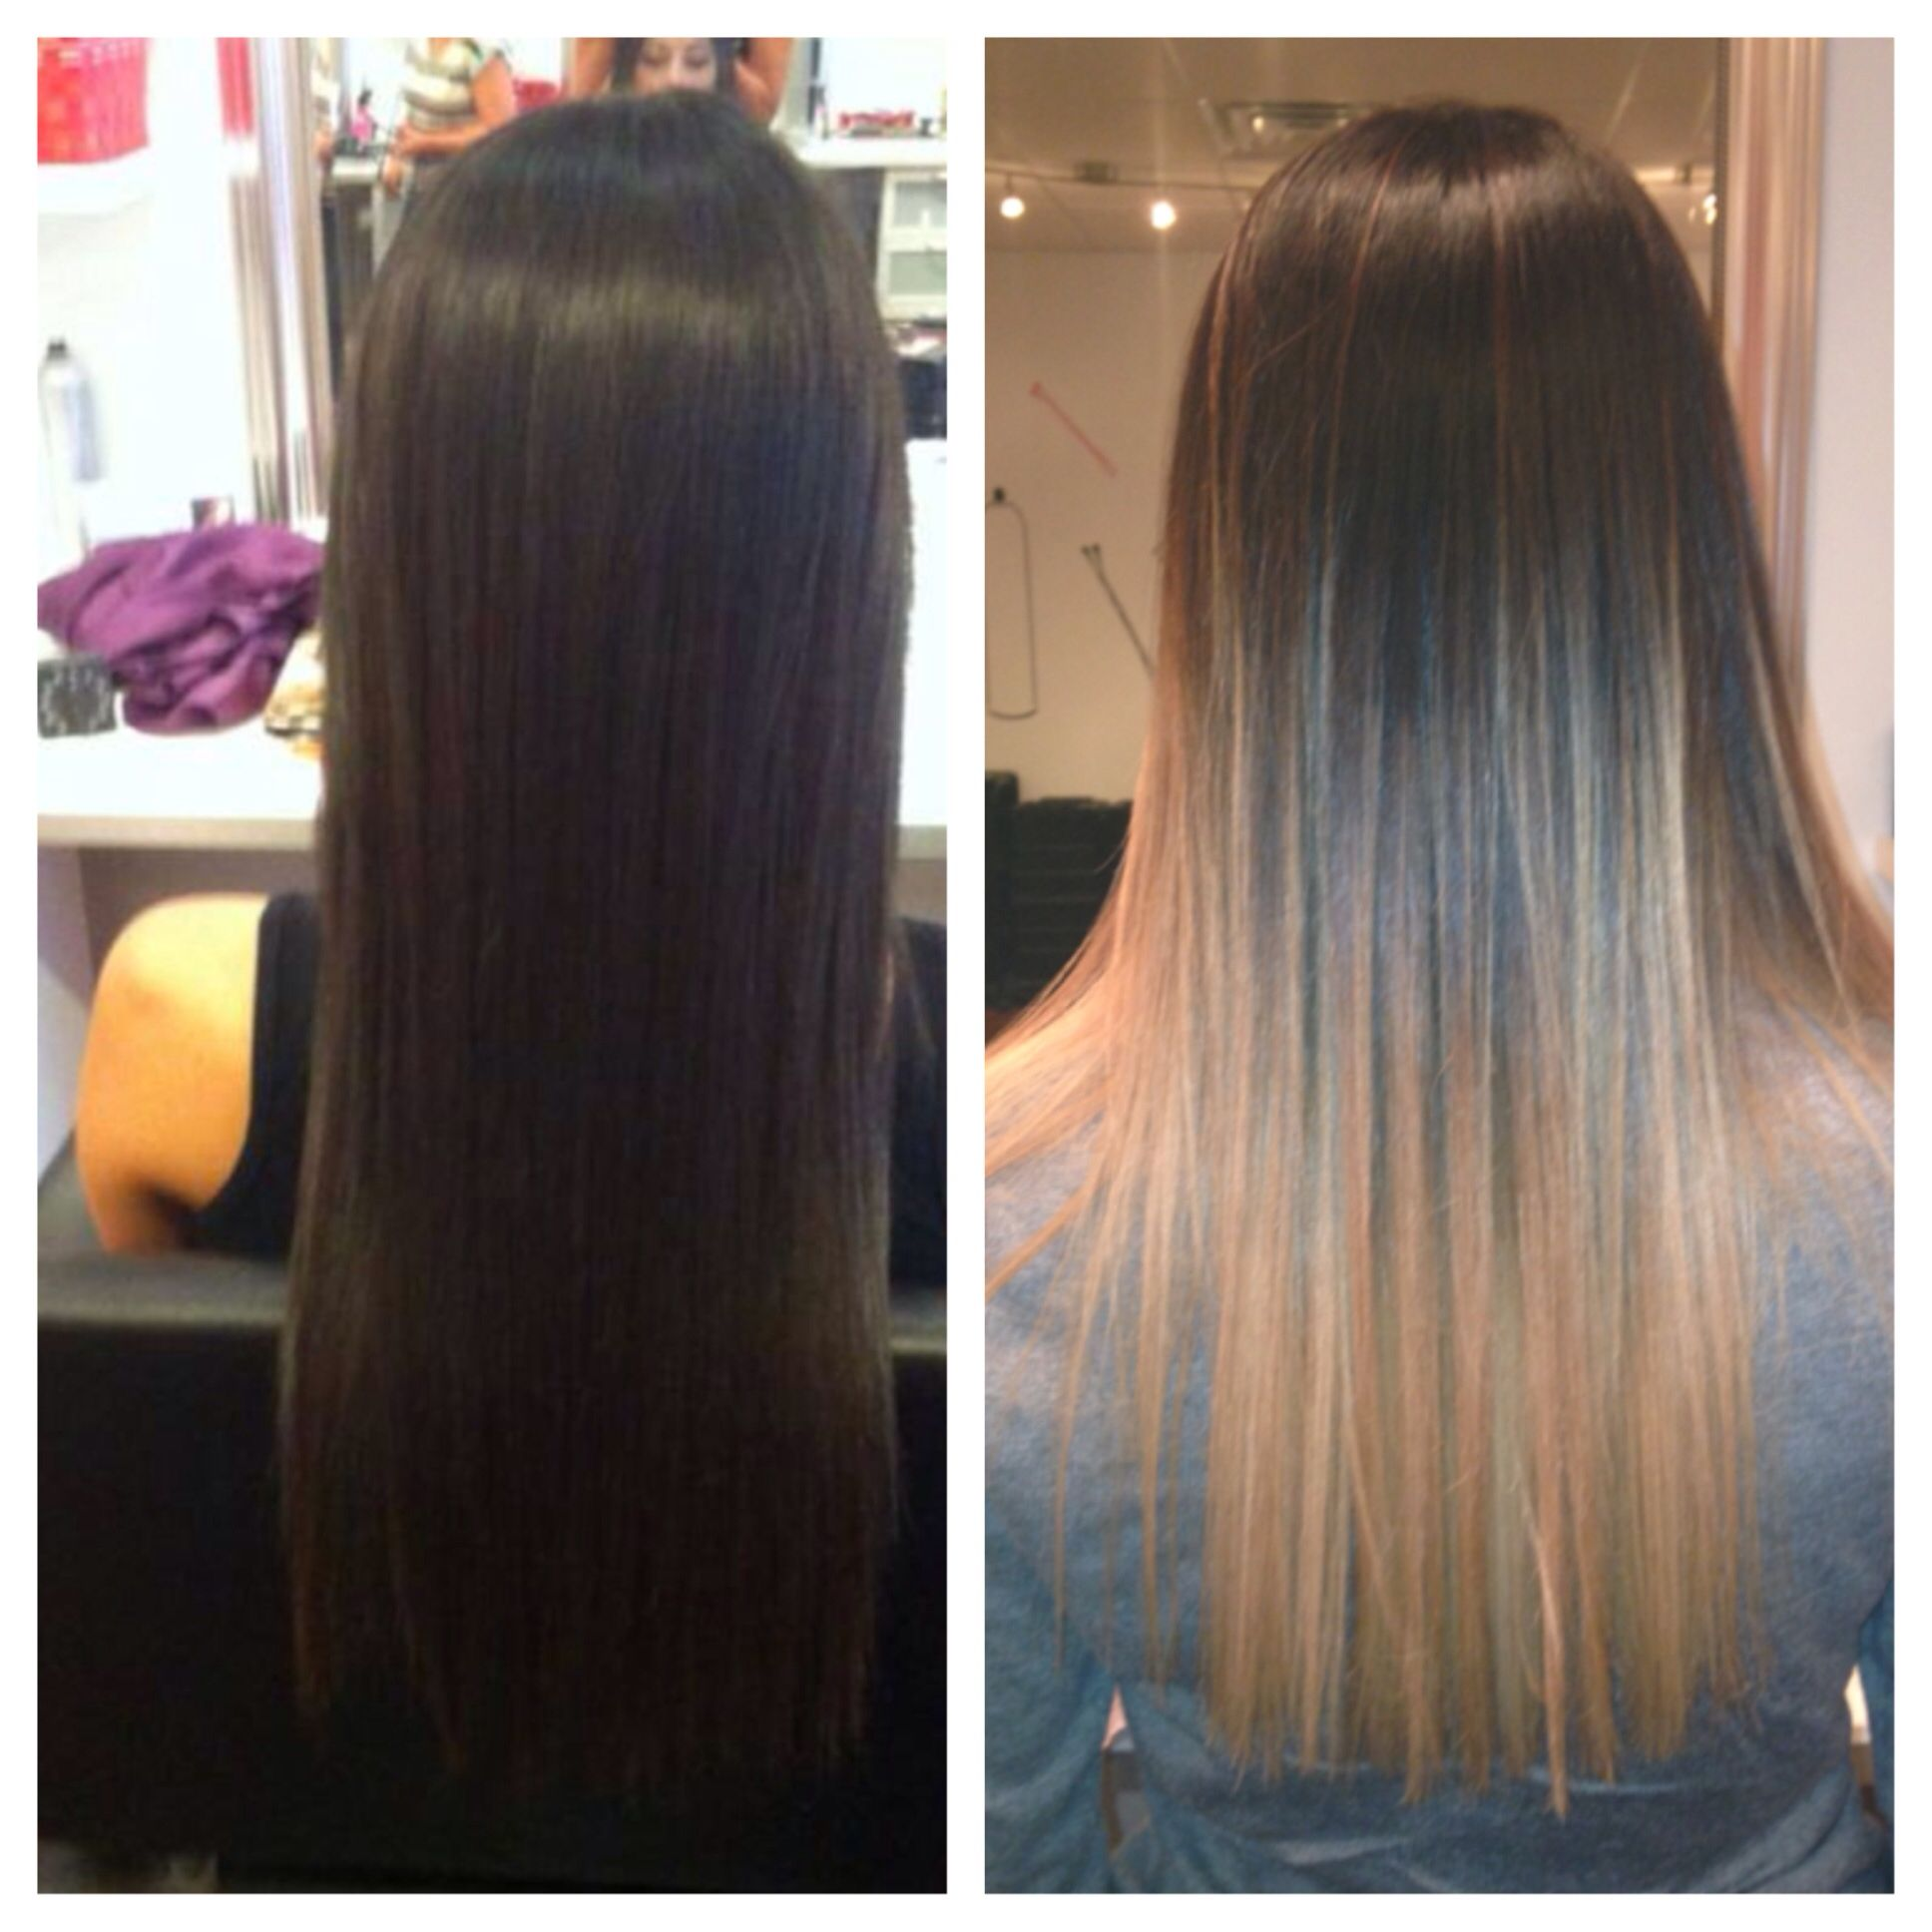 Ballayage Blond se rapportant à from a natural dark brown to a faded blonde balayage and ombre